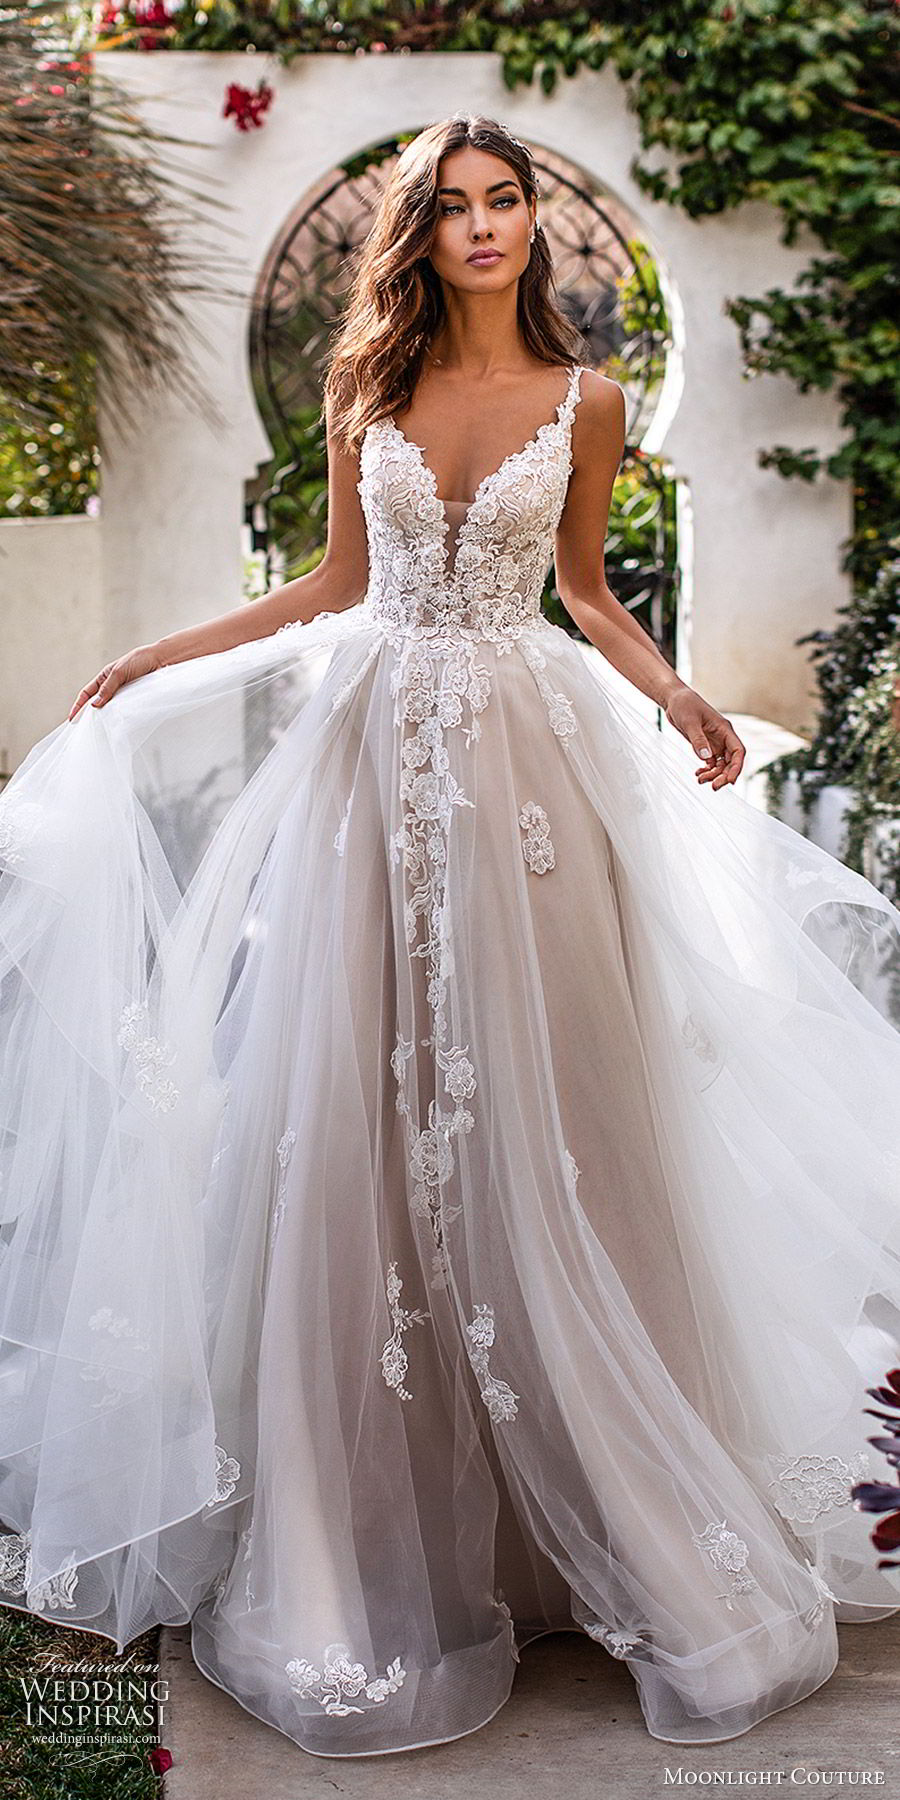 moonlight-couture-fall-2019-bridal-sleeveless-lace-straps-sweetheart-neckline-embellished-bodice-a-line-ball-gown-wedding-dress-1-romantic-princess-tiered-skirt-chapel-train-blush-mv.jpg